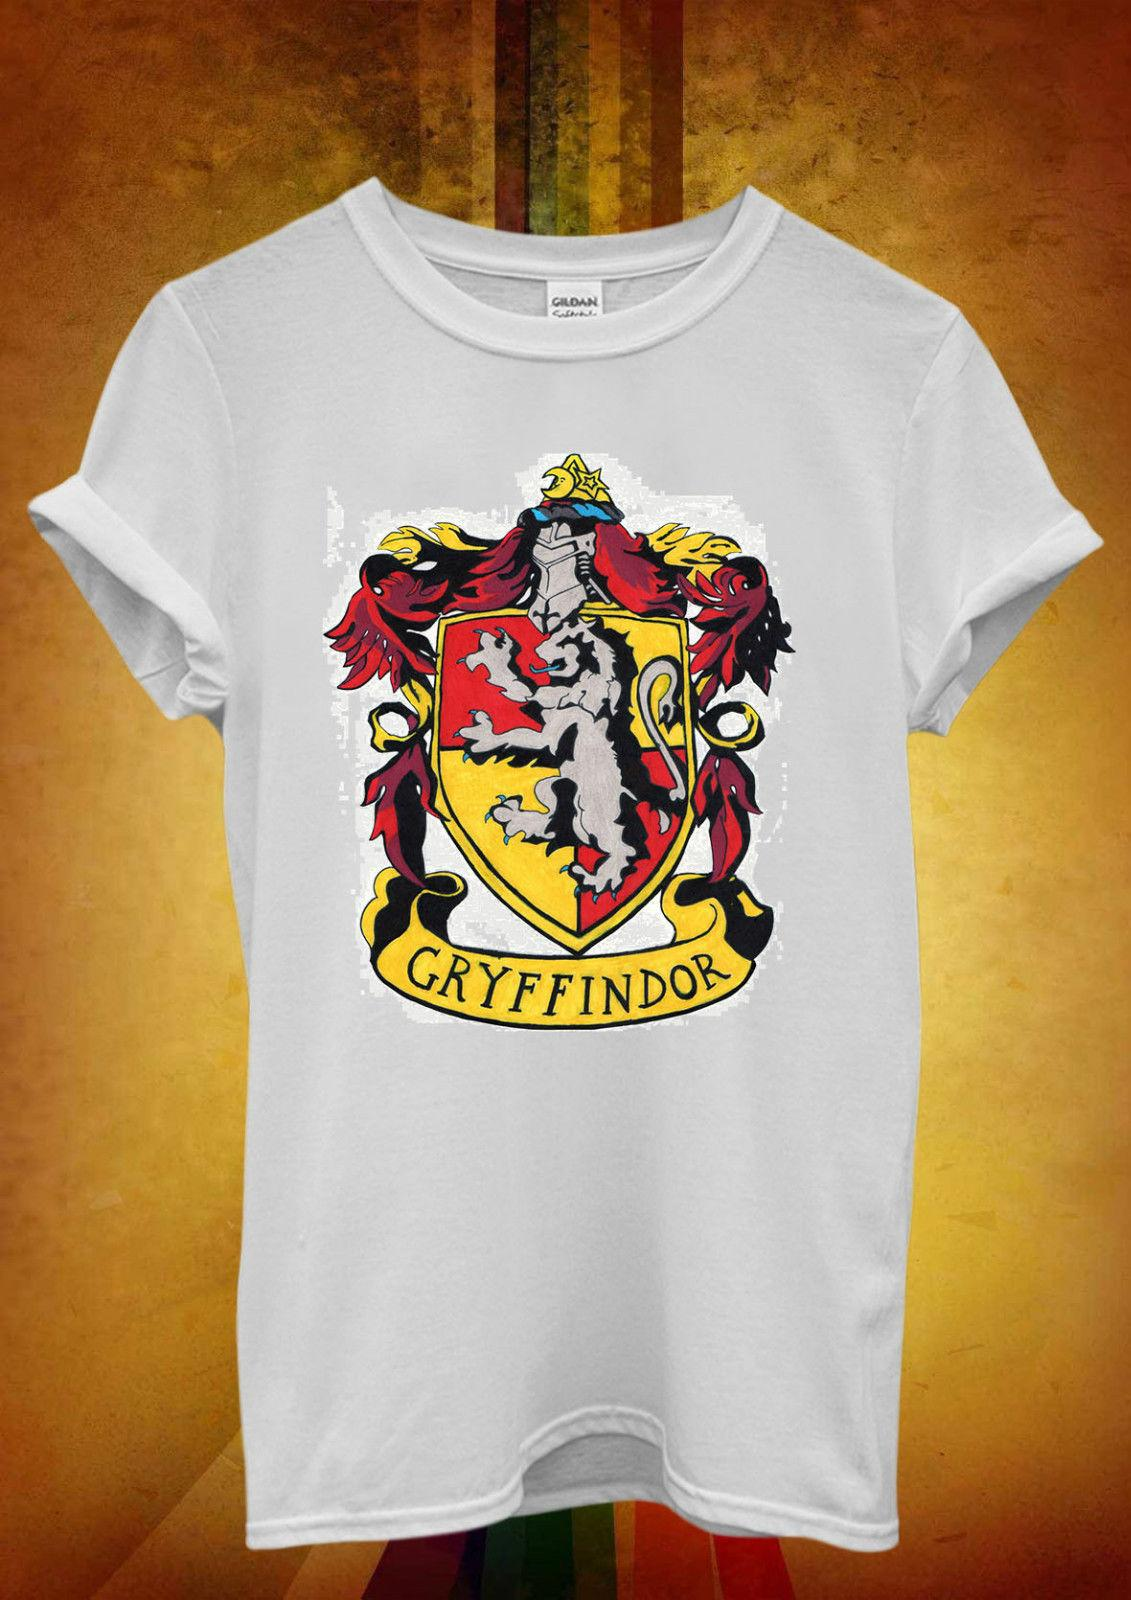 274c21a65 Harry Potter Gryffindor Funny Cool Men Women Unisex T Shirt Tank Top Vest  150 2018 Funny Tee ,Cute T Shirts Man ,100% Cotton Cool , 24 Hour Tee  Shirts T ...